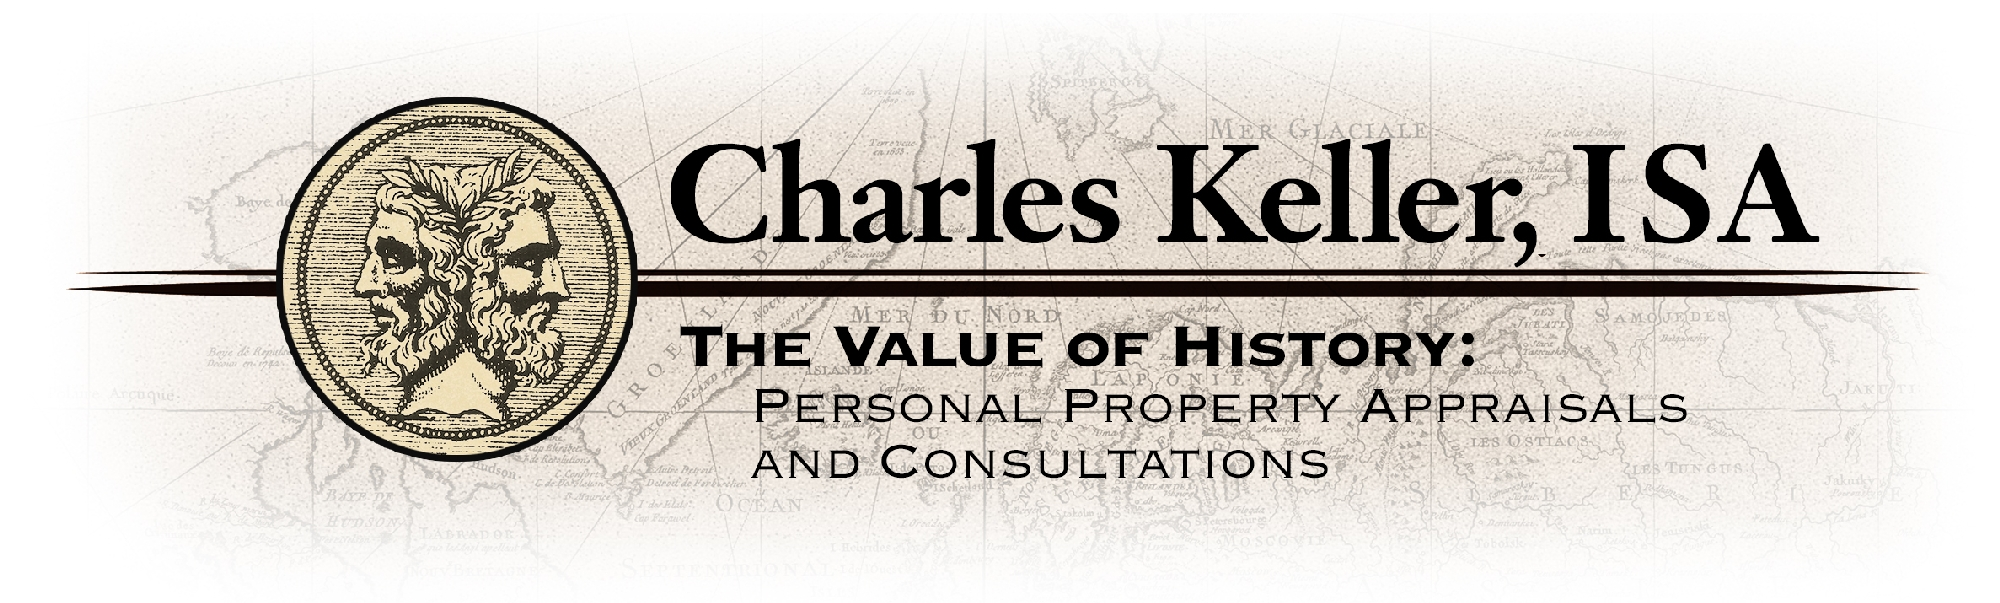 Kansas City Personal Property Appraisals